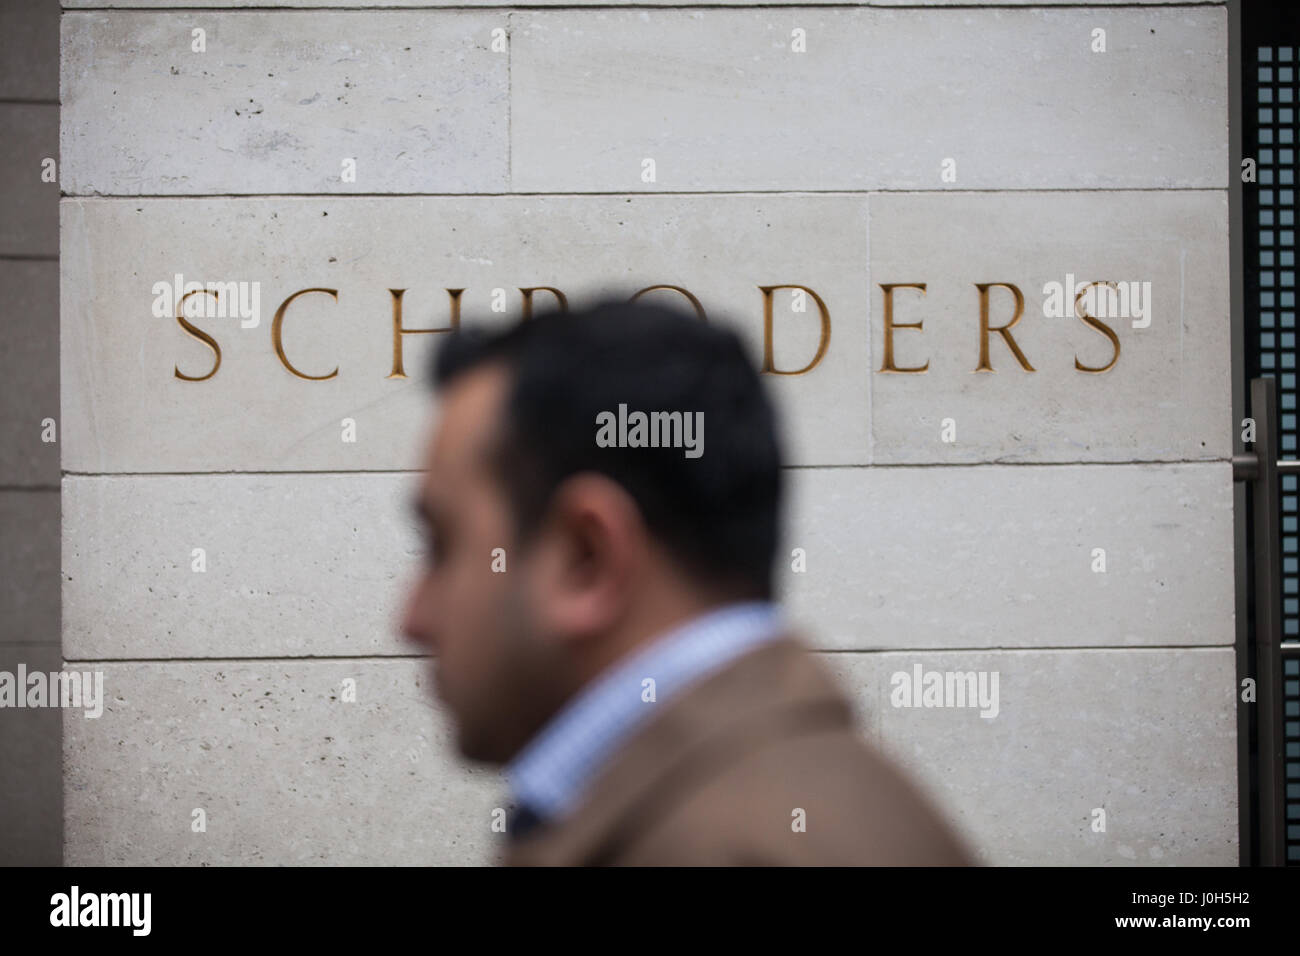 London, UK. 13th April, 2017. A man walks past a sign outside the offices of Schroders in the City of London. Credit: - Stock Image